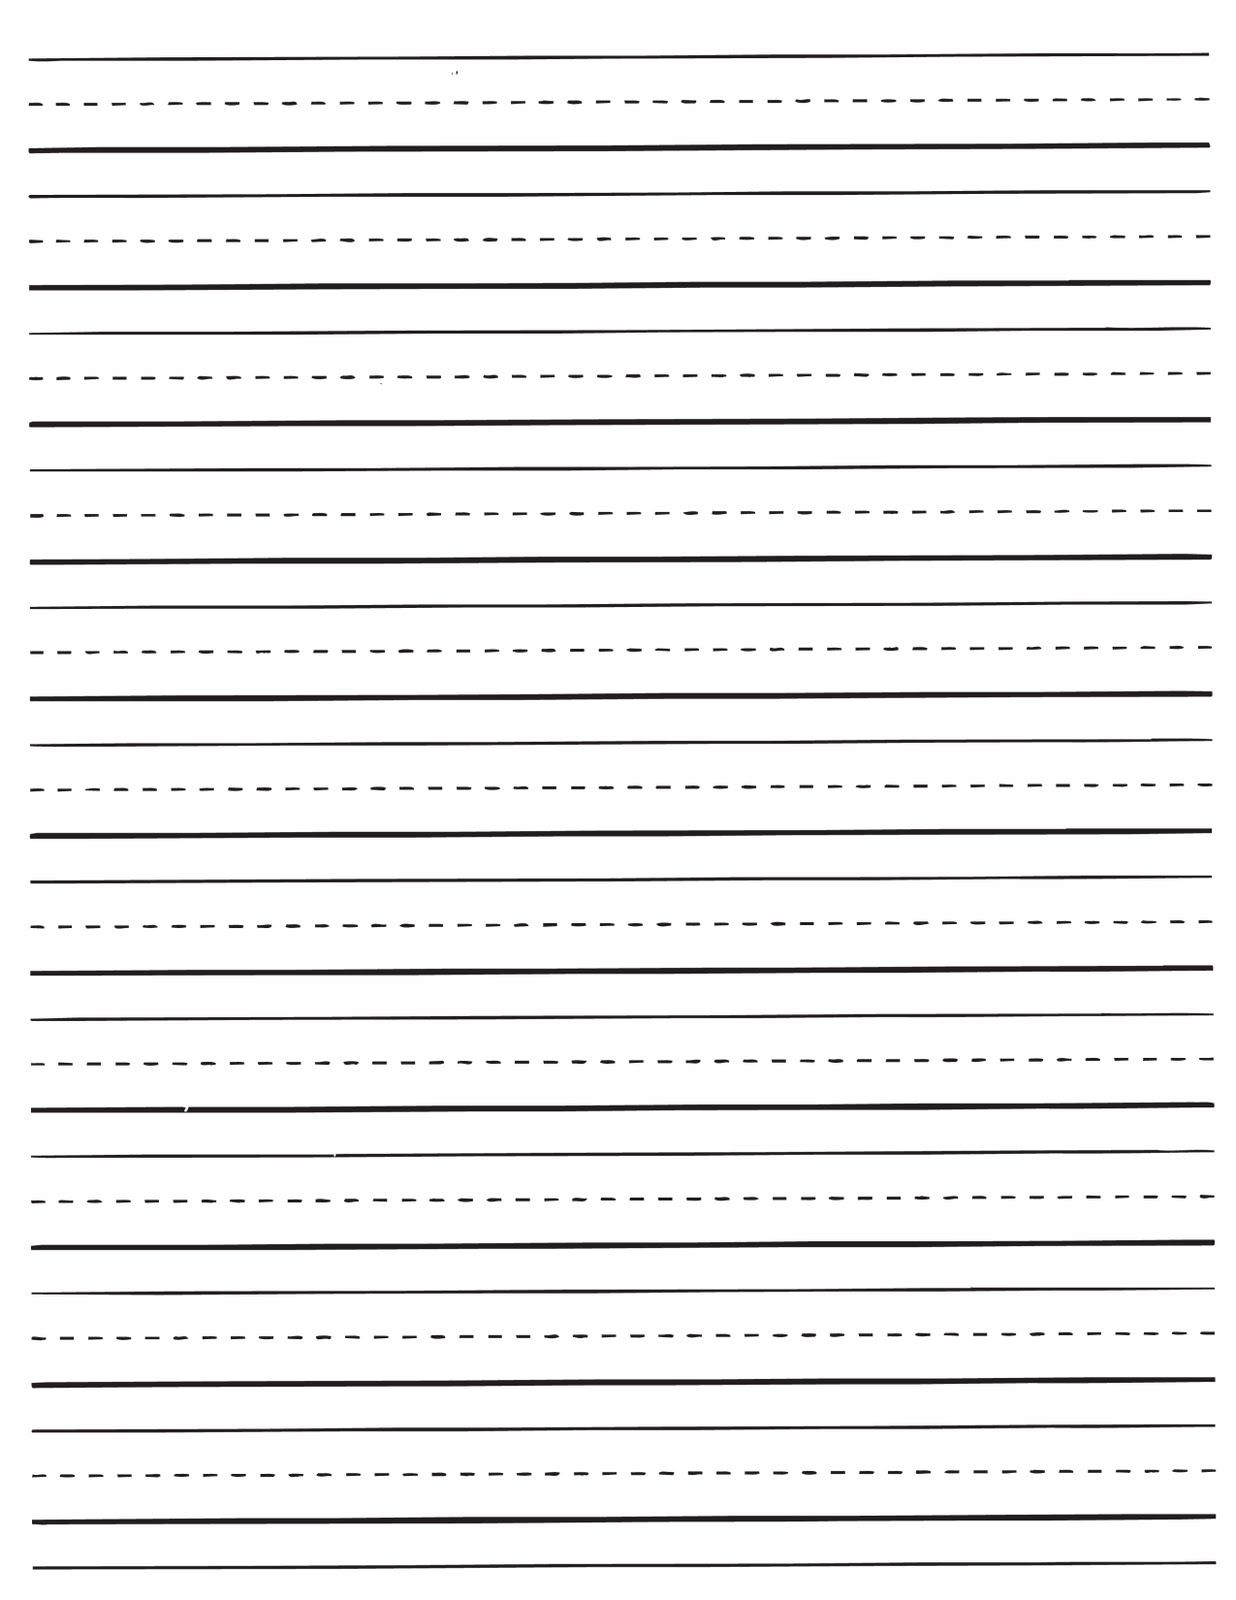 lined paper for kids | kiddo shelter | notebook paper templates